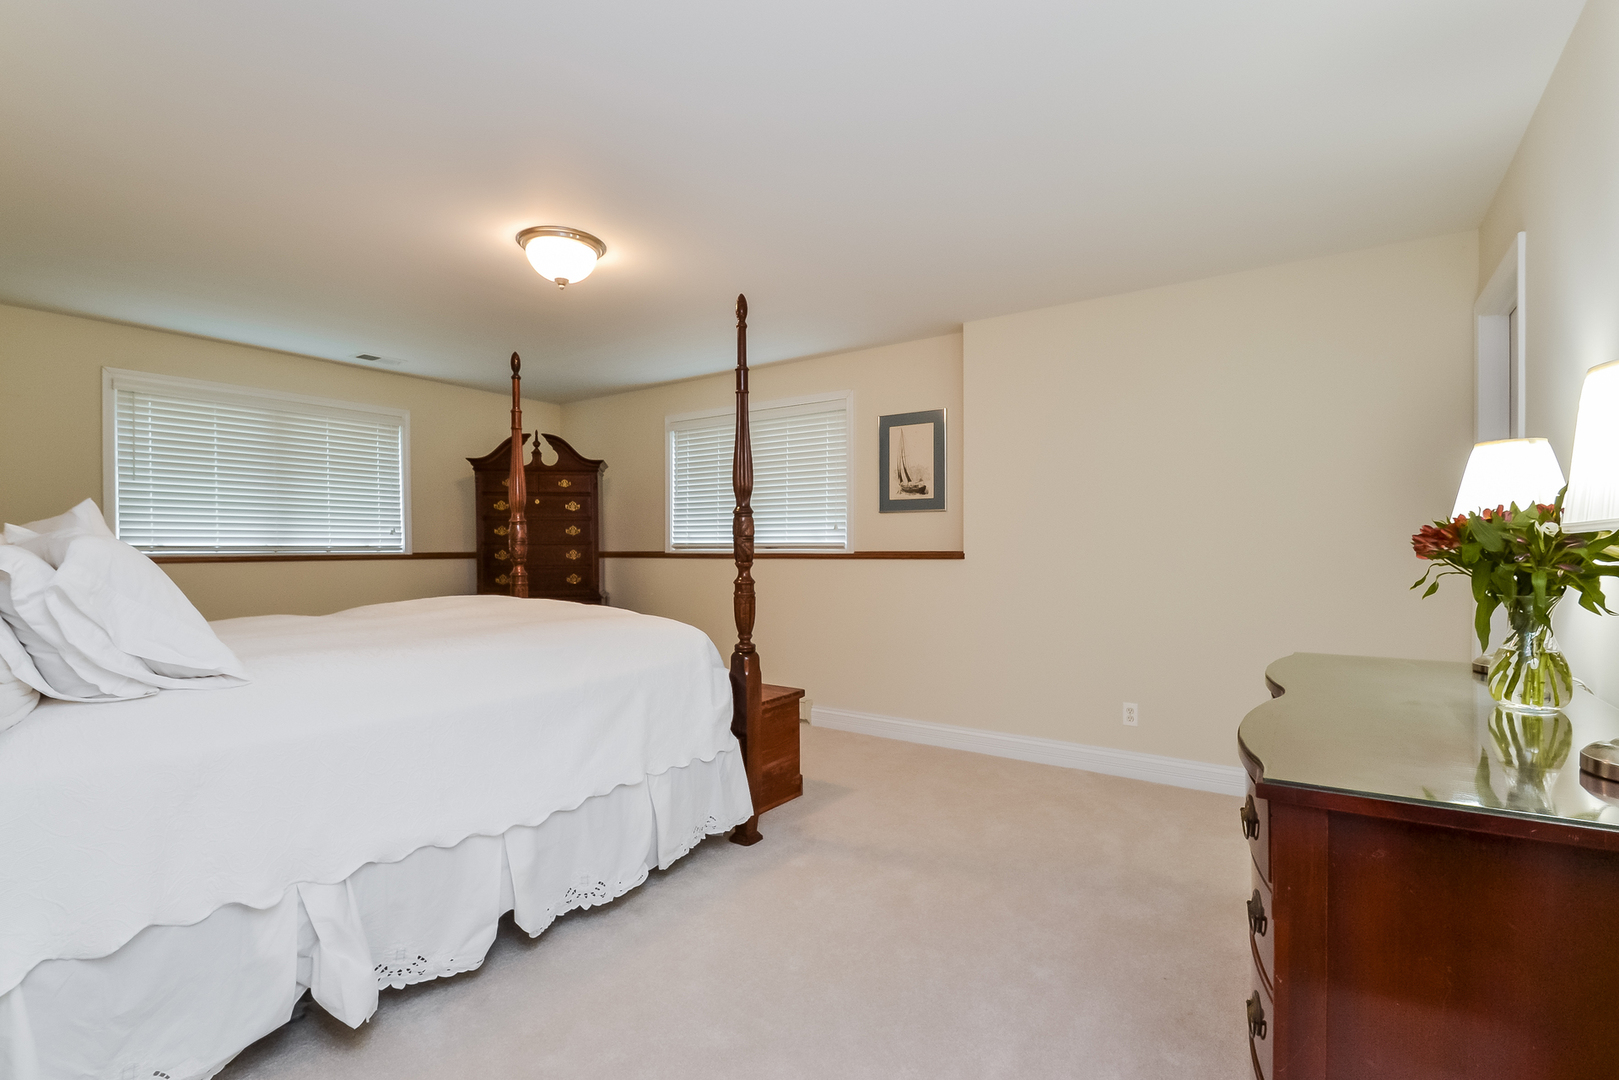 meadowbrook divorced singles Property valuation of meadowbrook boulevard, cleveland heights, oh: 3240, 3241, 3244, 3247, 3248, 3251, 3252, 3256, 3257, 3260 (tax assessments.